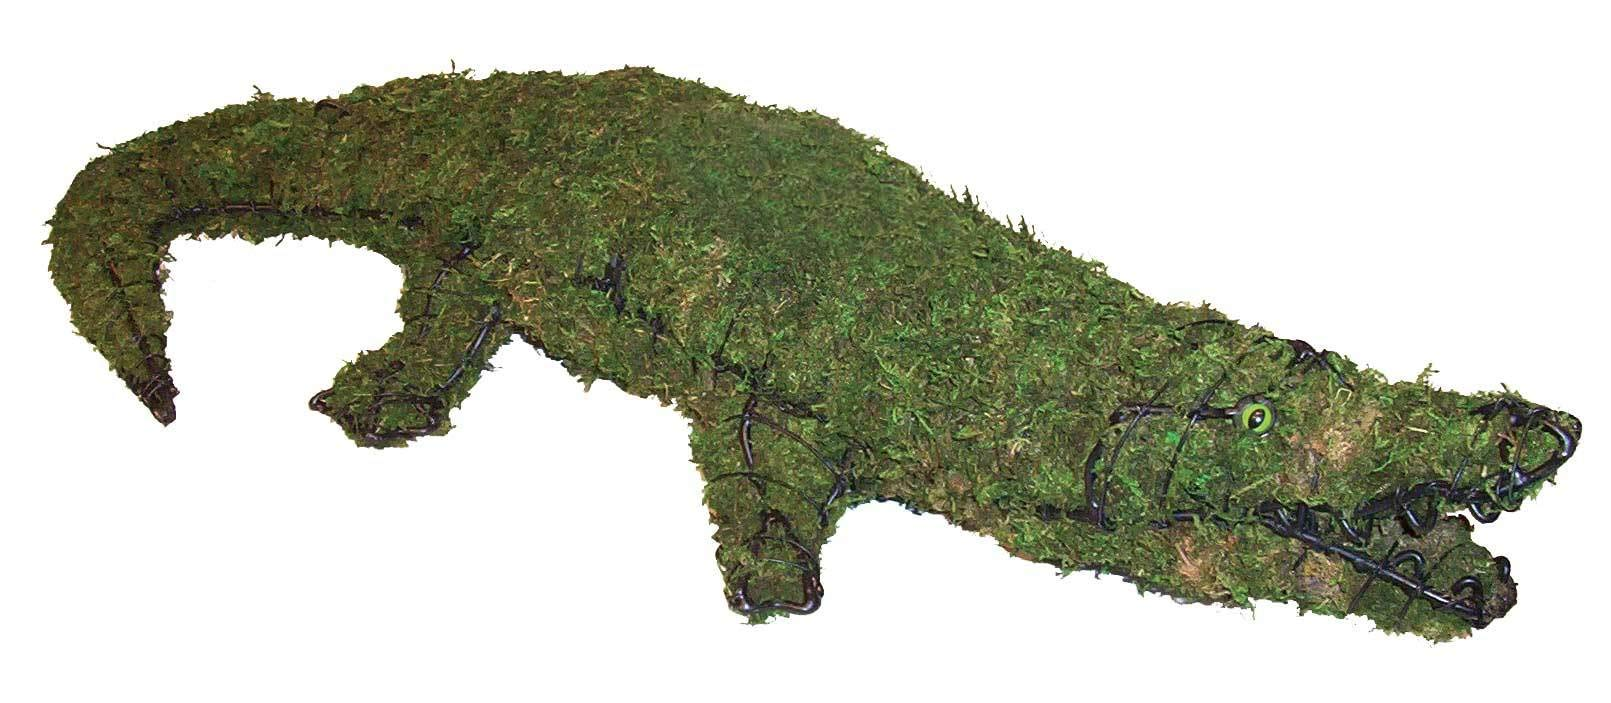 Alligator 9''x49''x20'' Topiary Sculpture - Wire Frame or Moss Filled